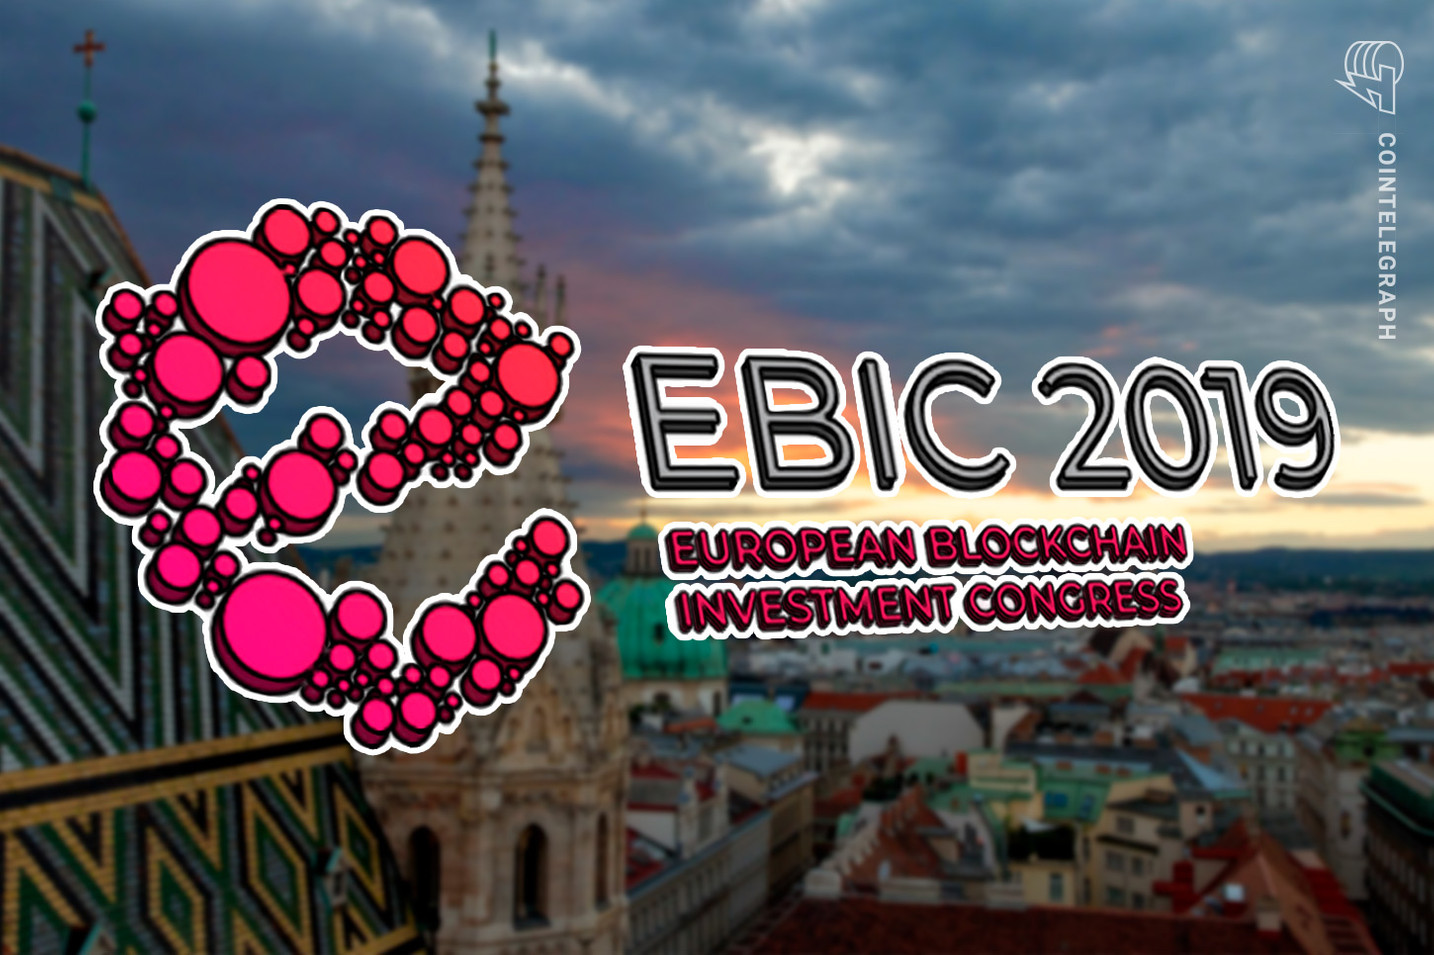 European Blockchain Investment Congress 2019 is About to Take Place in Vienna in Less than Two Weeks